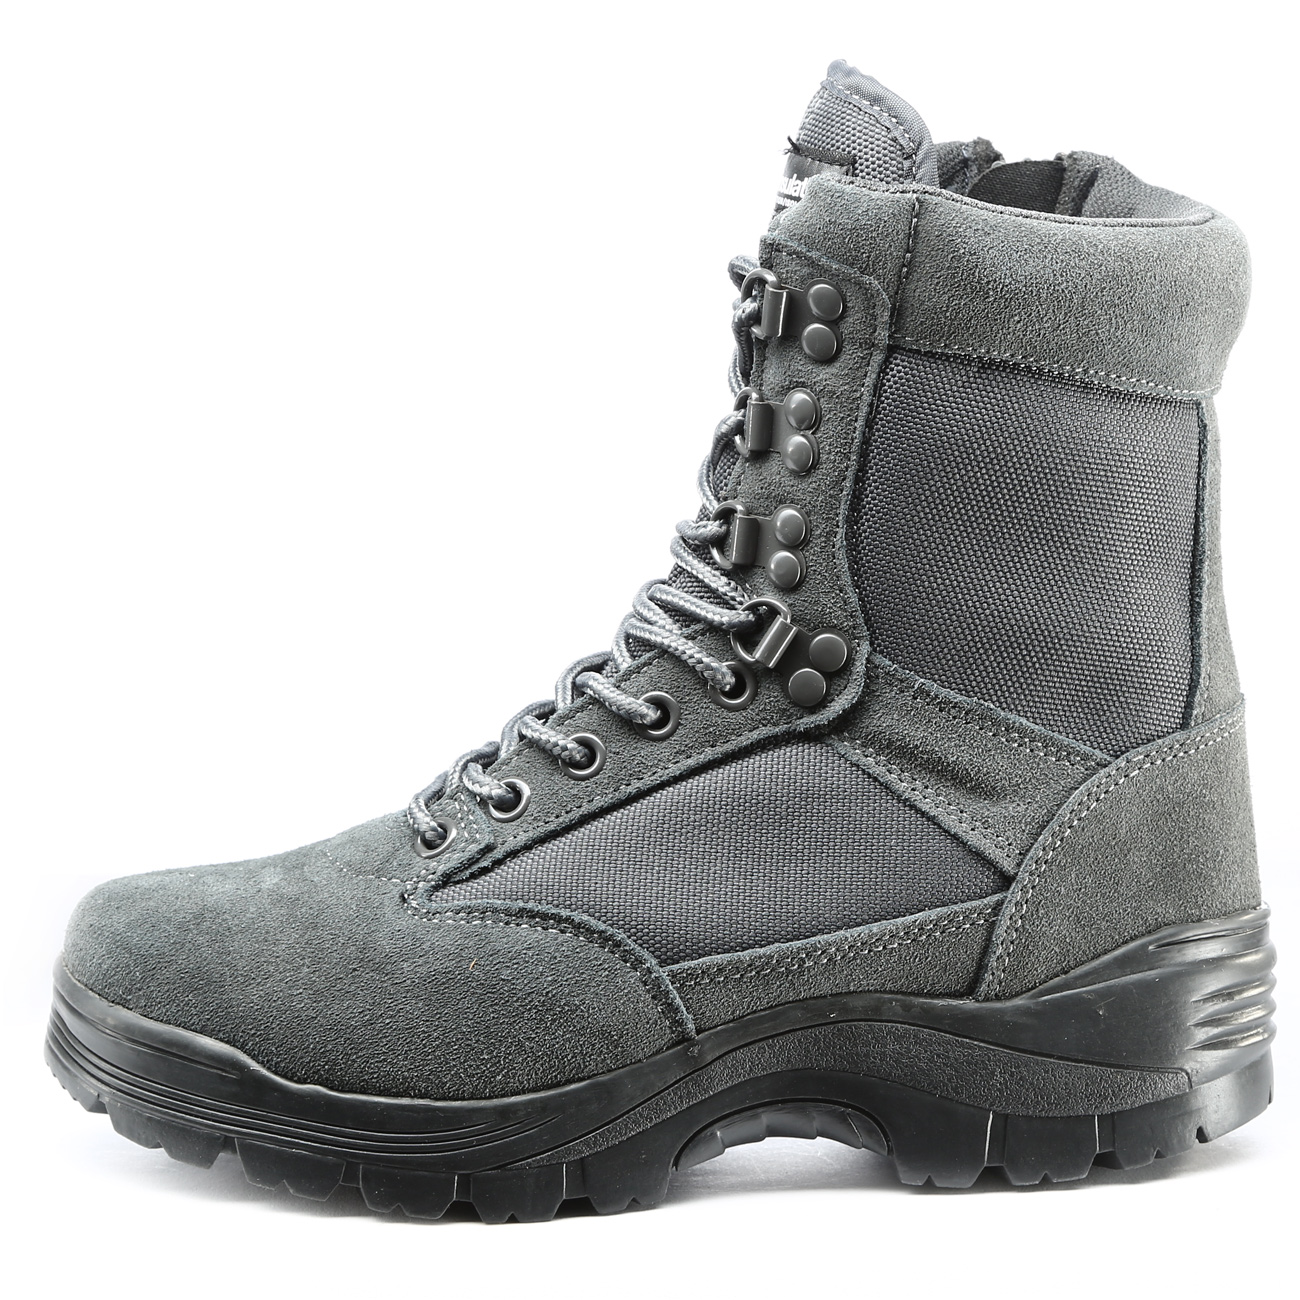 Mil-Tec Stiefel Tactical Boots YKK-Zipper urban grey 0